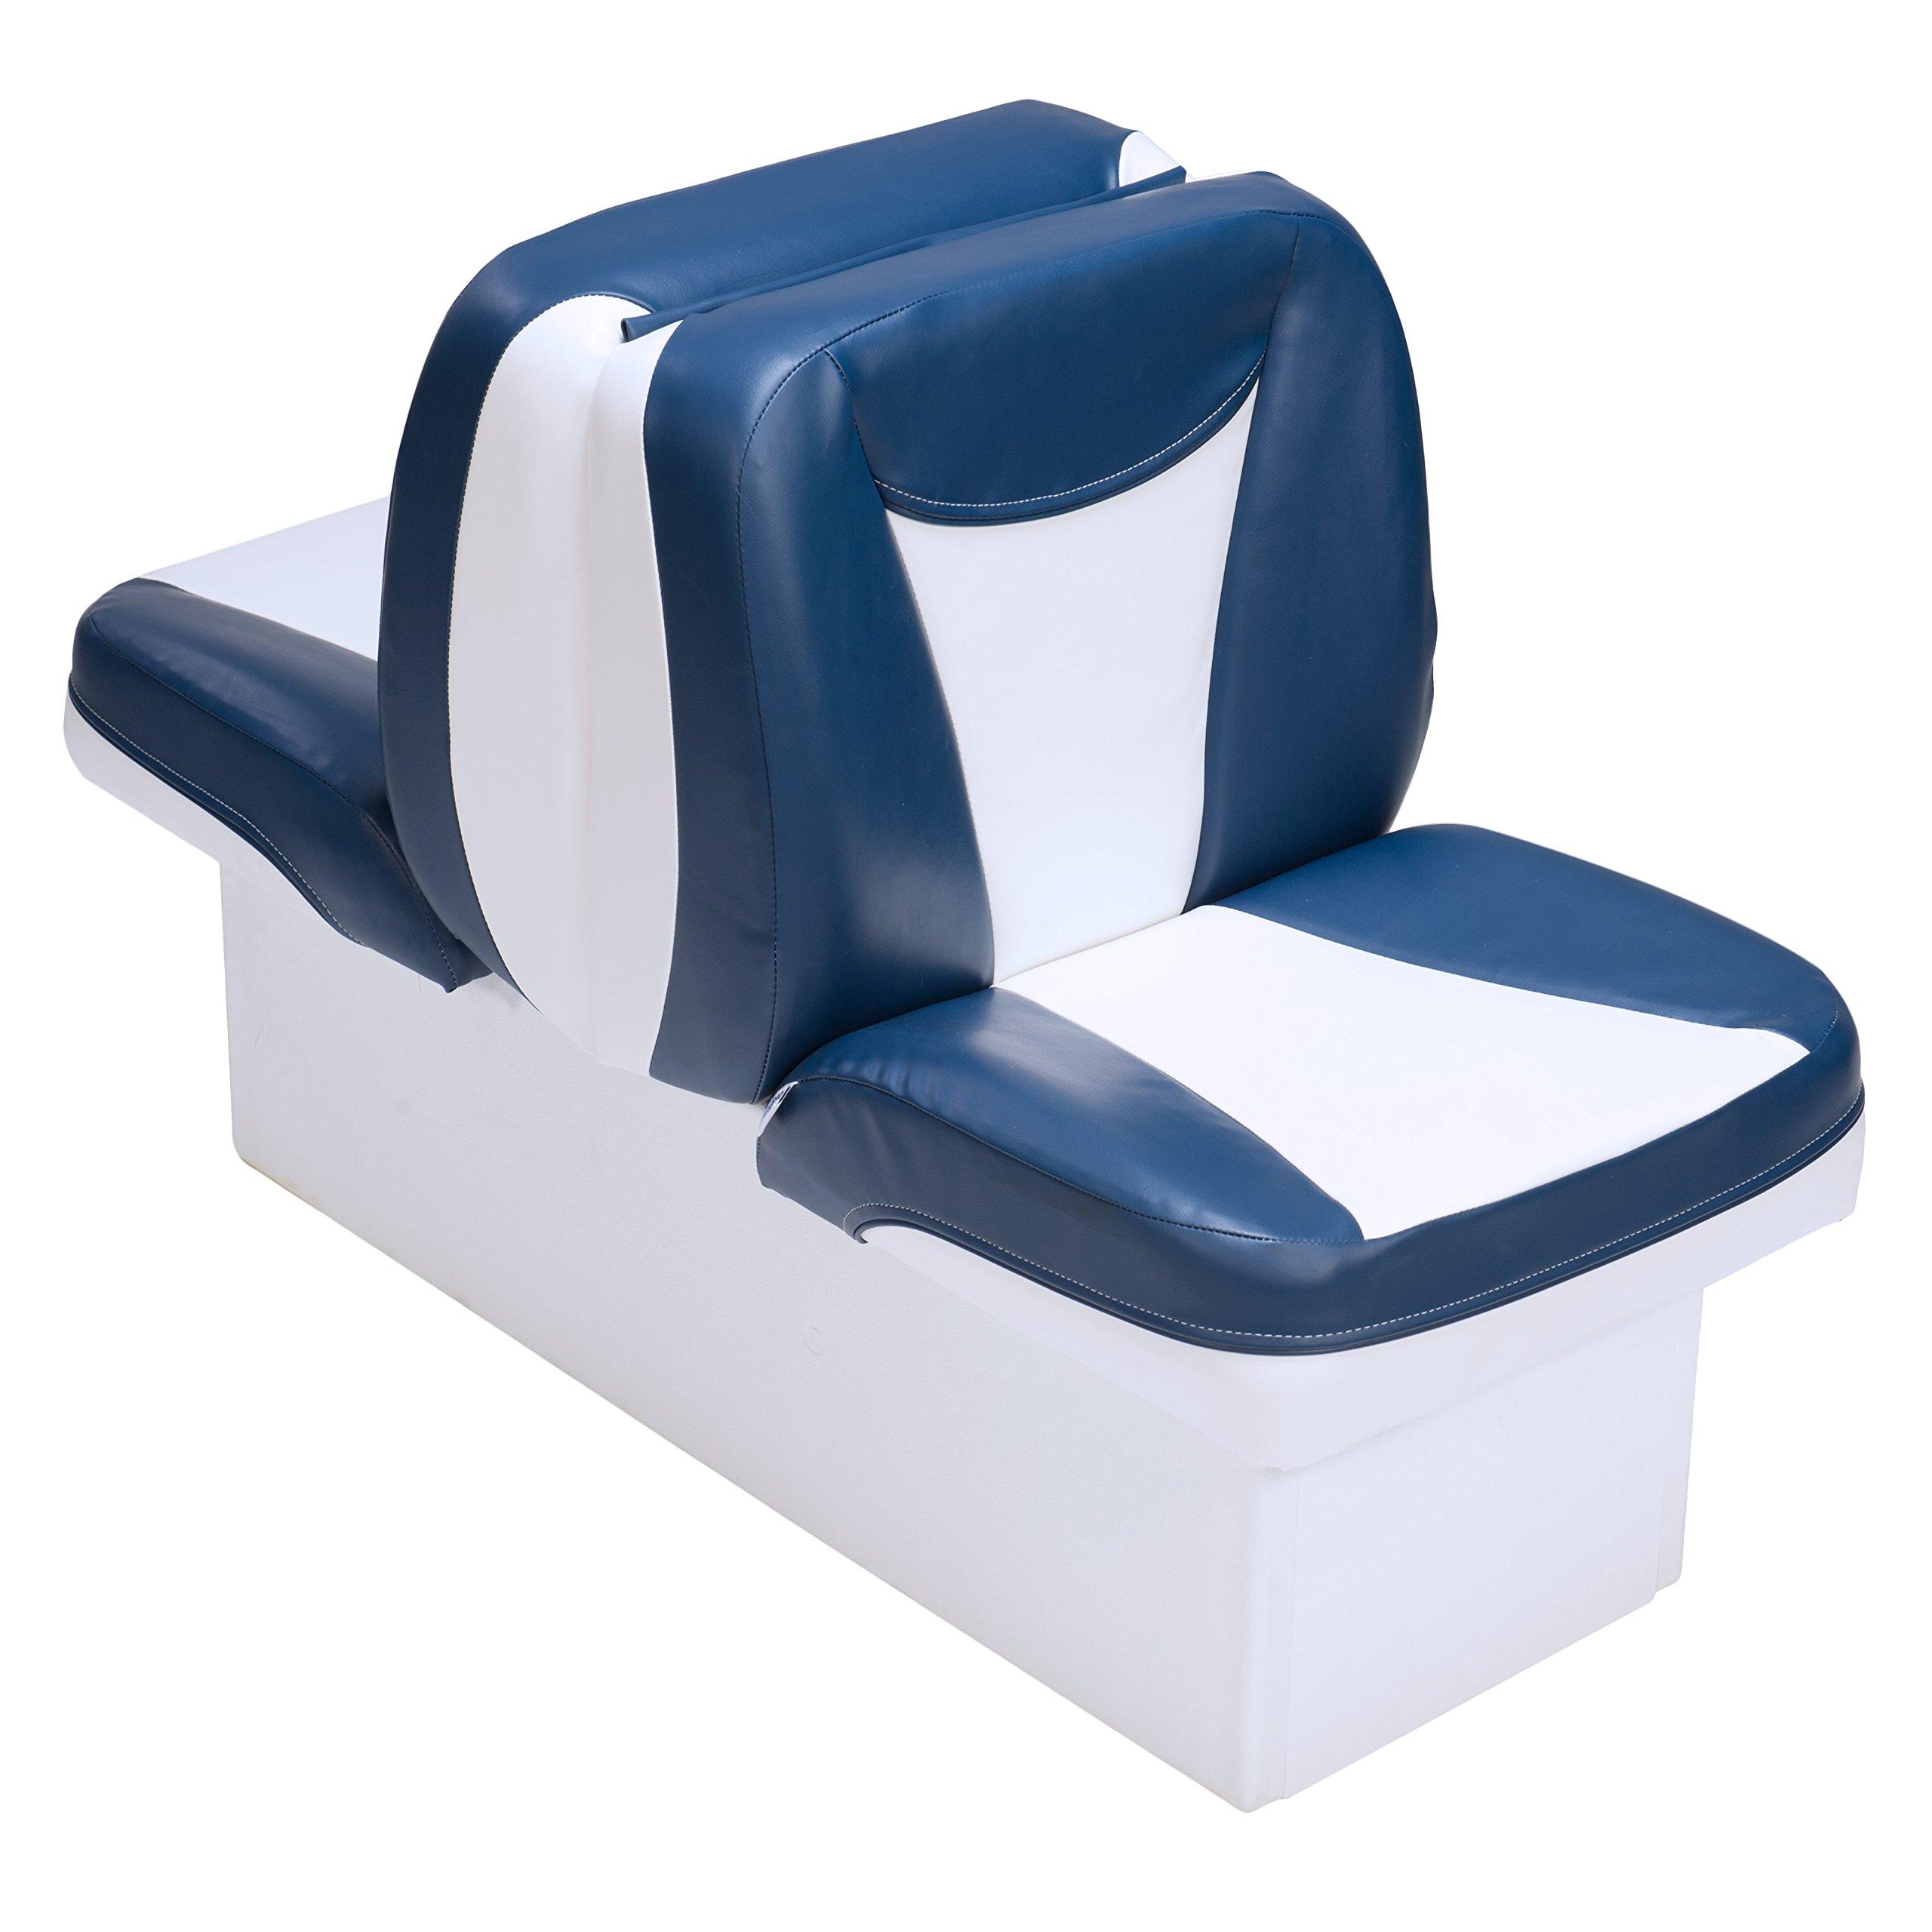 Premium Back to Back Boat Seats (White and Blue) by DeckMate Boat Seats